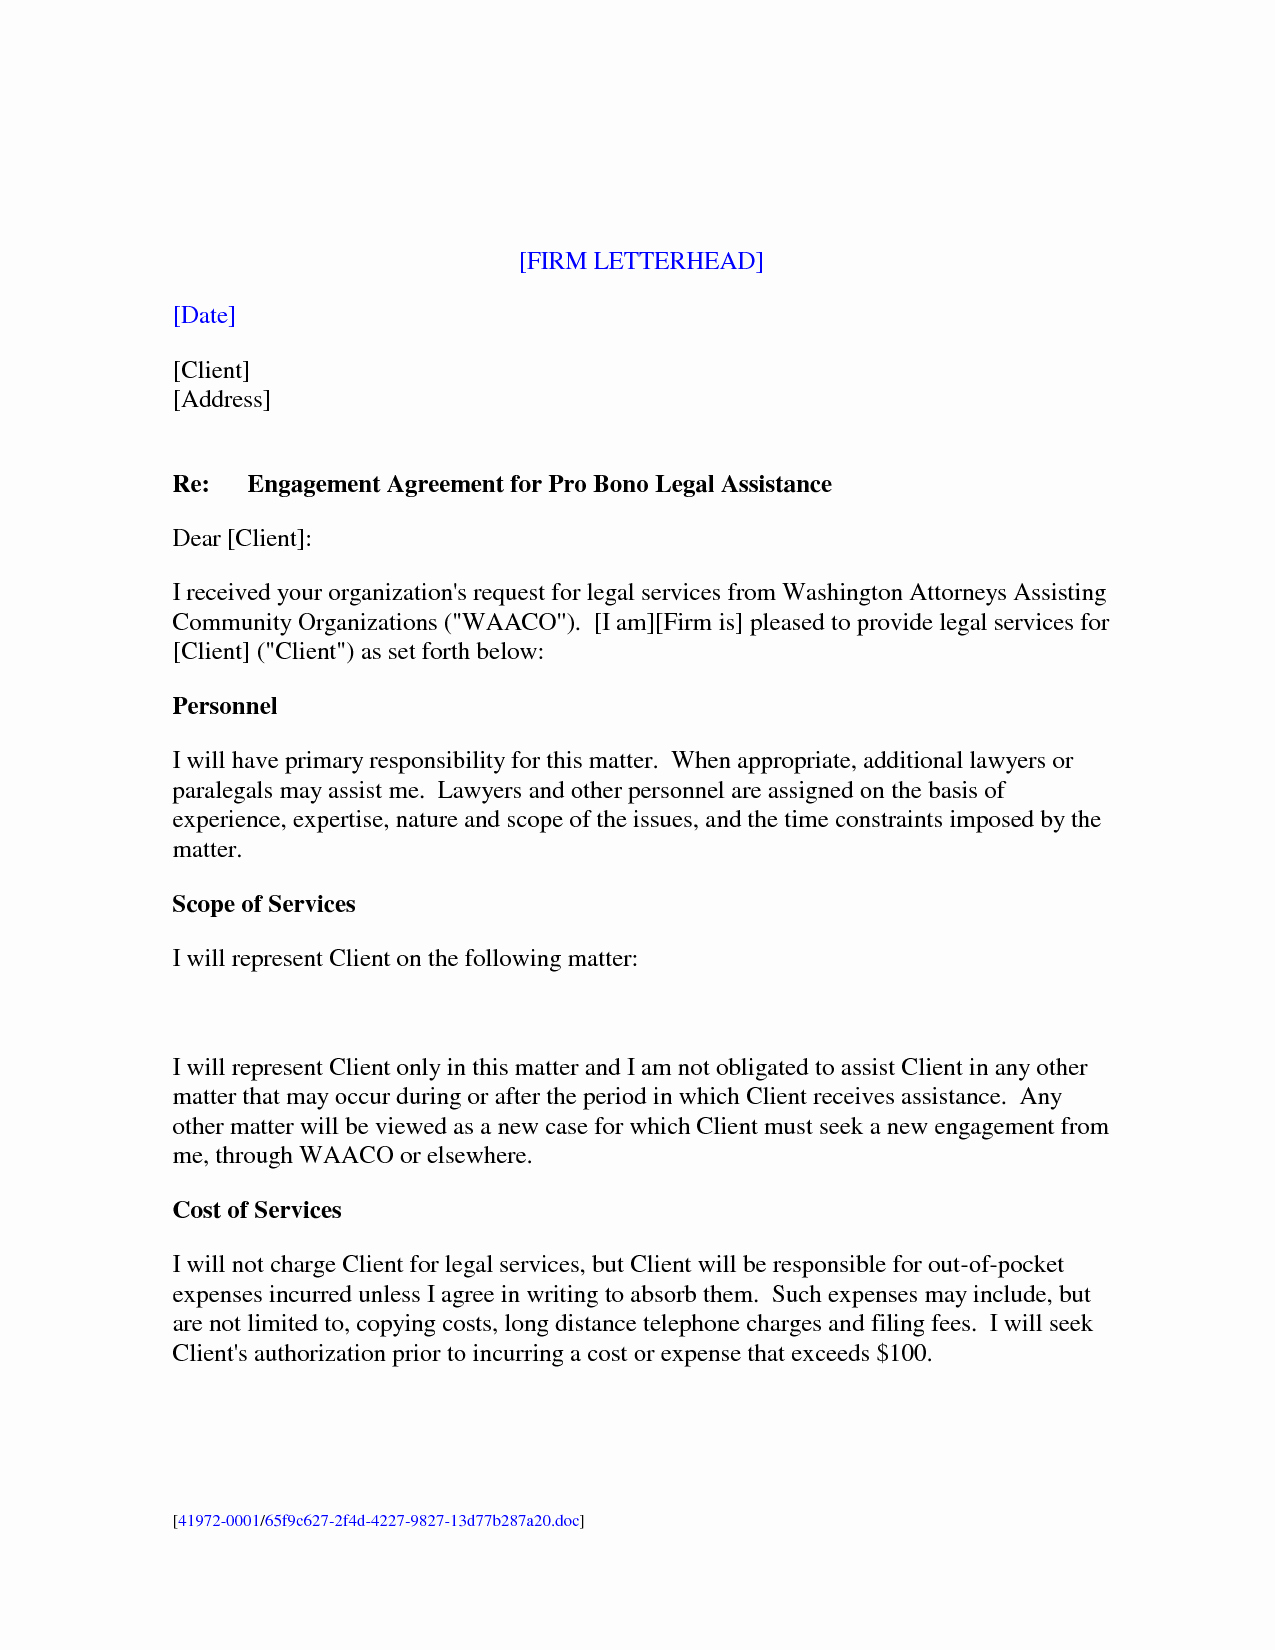 Attorney Client Letter Template Luxury Best S Of Sample Client Letter From attorney Lawyer